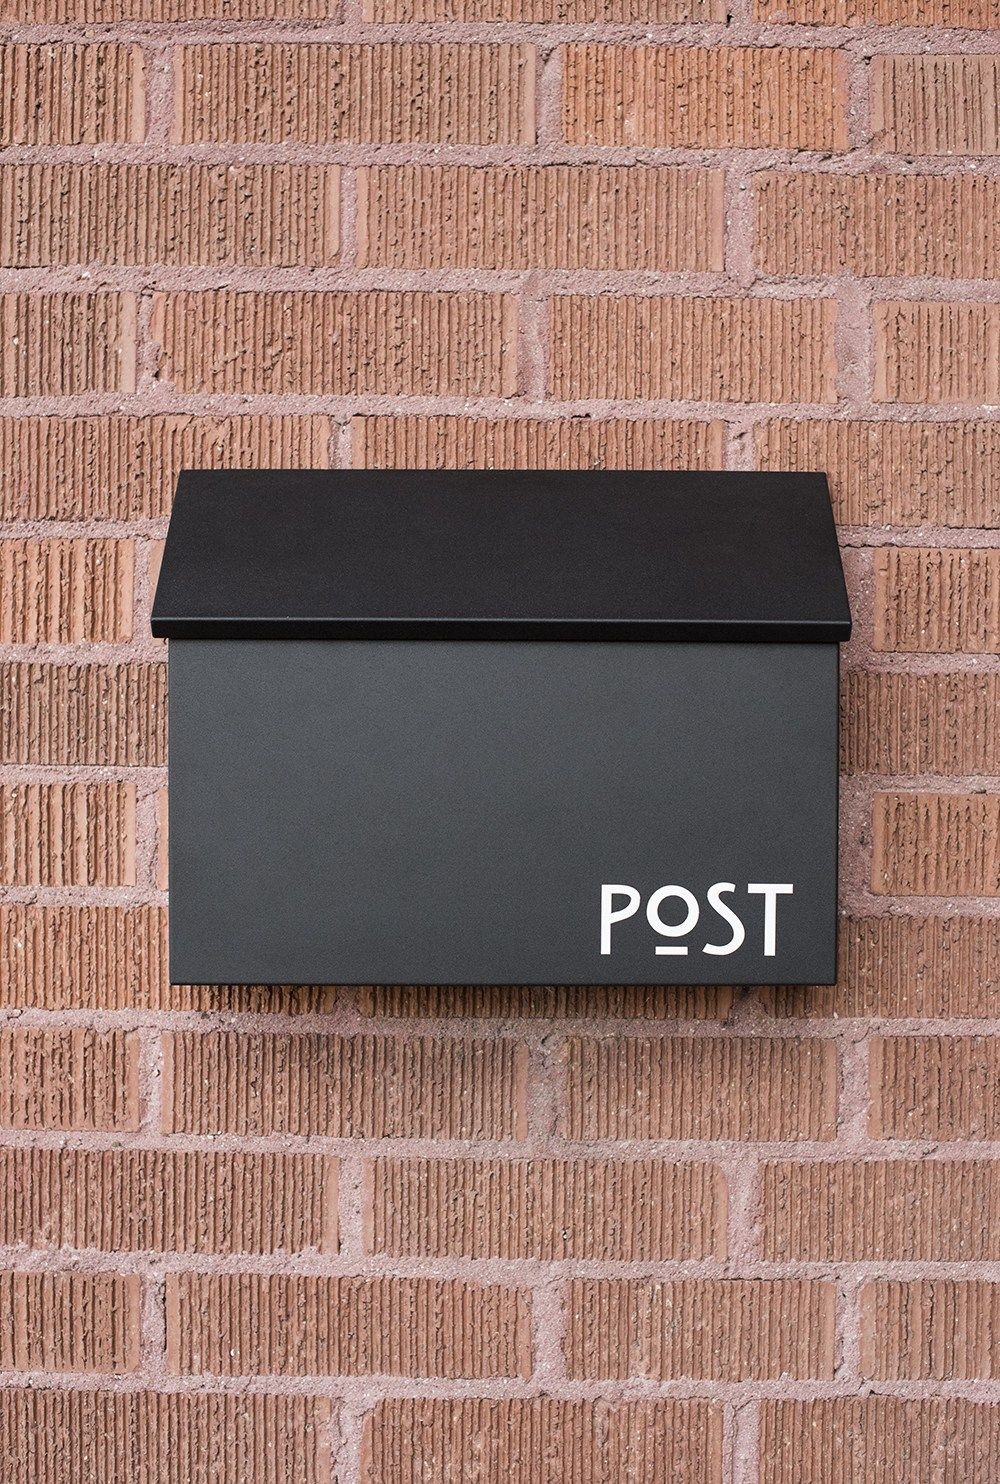 Best Of Etsy Wall Mount Mailboxes Room For Tuesday Blog Diy